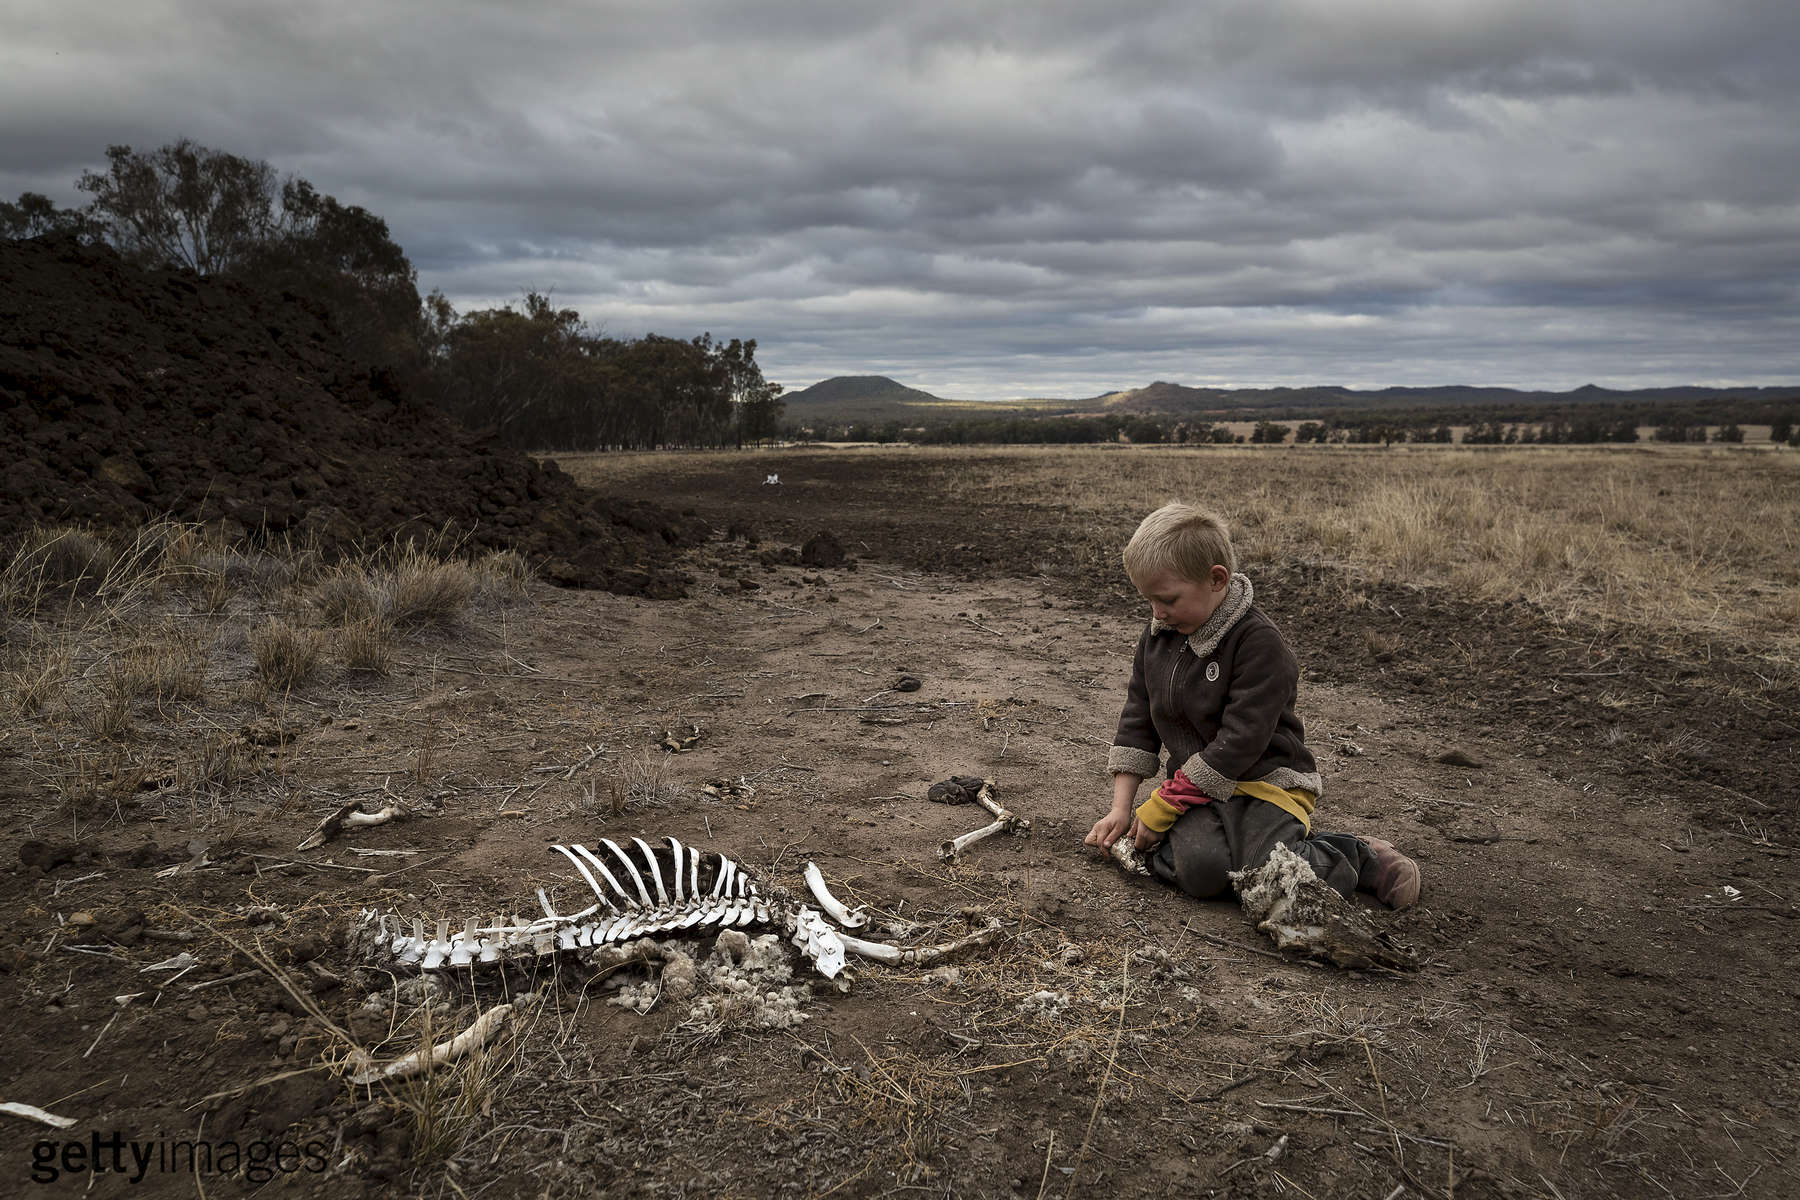 COONABARABRAN, AUSTRALIA - JUNE 17: Harry Taylor, 6, plays with the bones of dead livestock on the Taylor family farm. The Central Western region of New South Wales, Australia, farmers continue to battle a crippling drought which many locals are calling the worst since 1902. In Warrumbungle Shire, where sharp peaks fall away to once fertile farmland the small town of Coonabarabran is running out of water. The town dam is down to just 23% capacity, forcing residents to live with level six water restrictions. The New South Wales State government recently approved an emergency drought relief package of A$600m, of which at least A$250m is allocated for low interest loans to assist eligible farm businesses to recover. The package has been welcomed, though in the words of a local farmer {quote}it barely touches the sides{quote}. Now with the real prospect of a dry El-Nino weather pattern hitting the state in Spring, the longer term outlook for rain here is dire. June 17, 2018 in Coonabarabran, Australia.(Photo by Brook Mitchell/Getty Images)